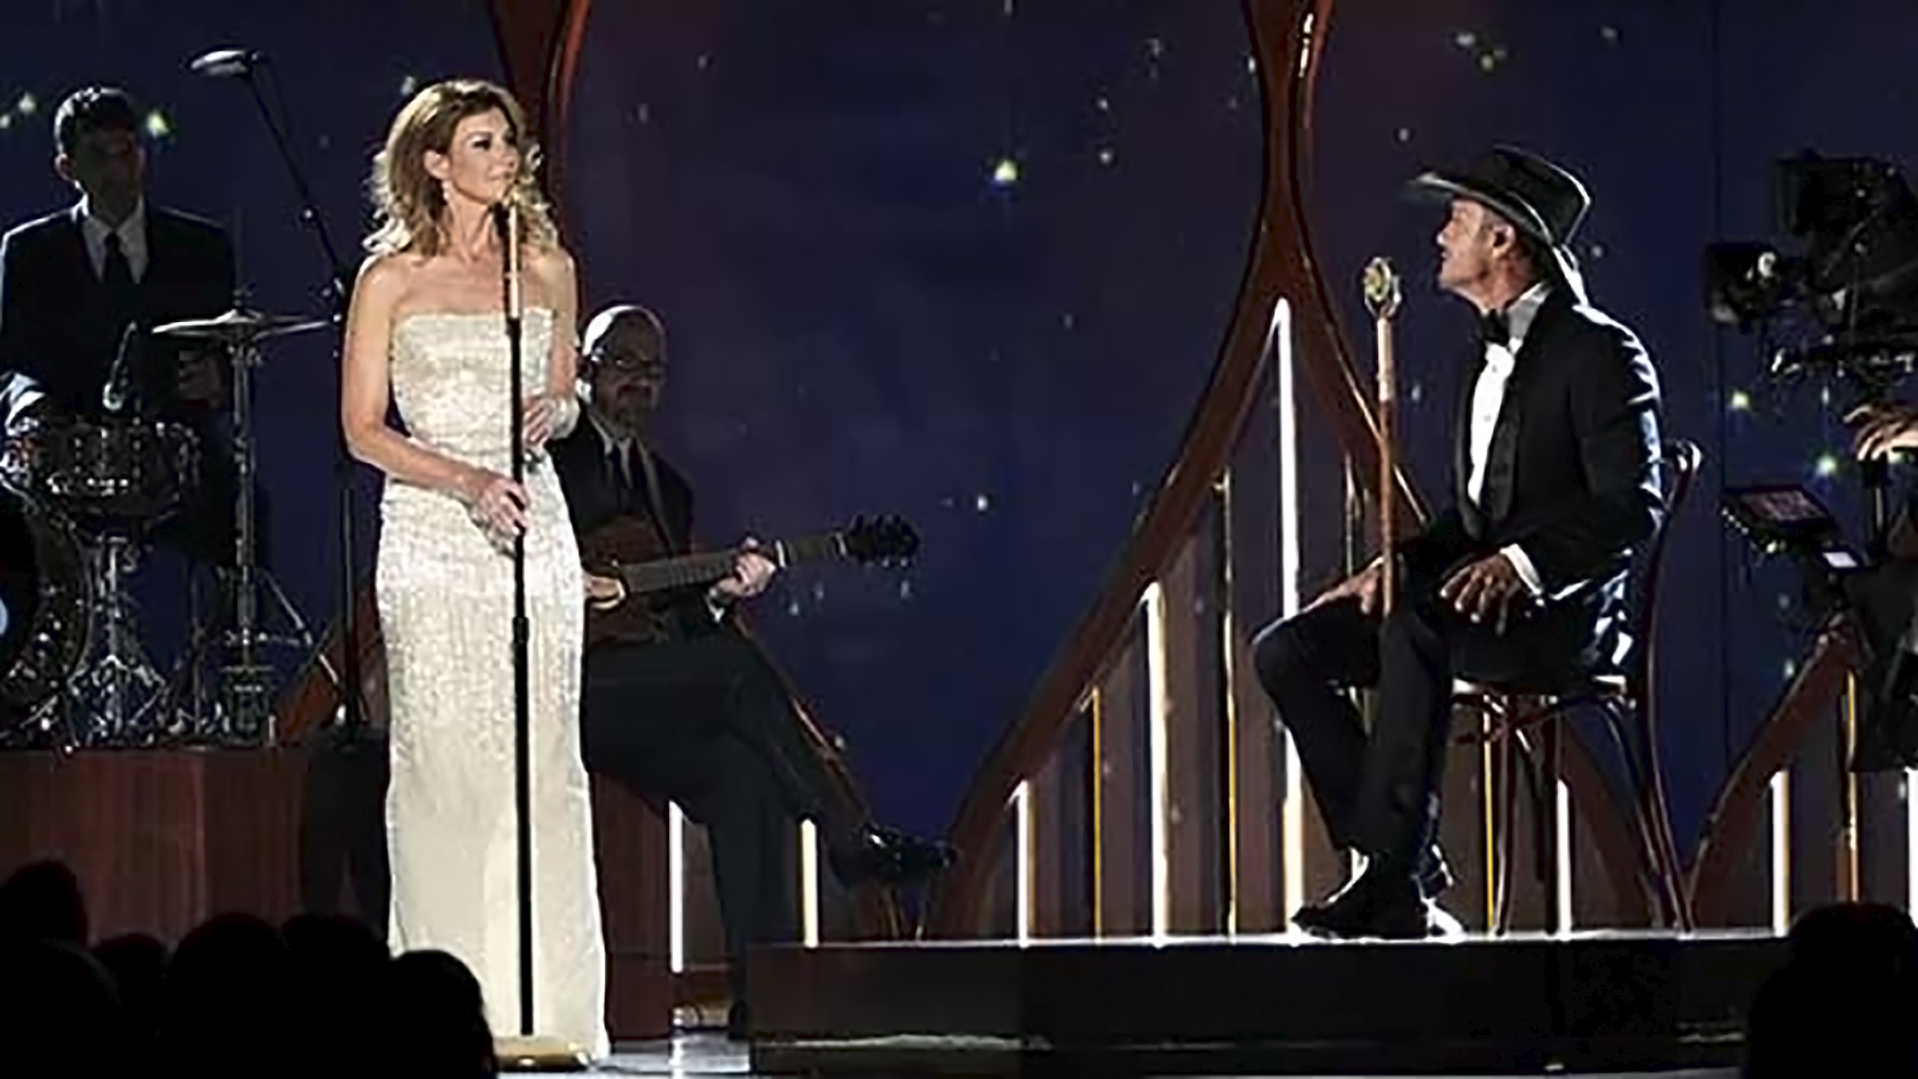 20. Faith Hill and Tim McGraw perform